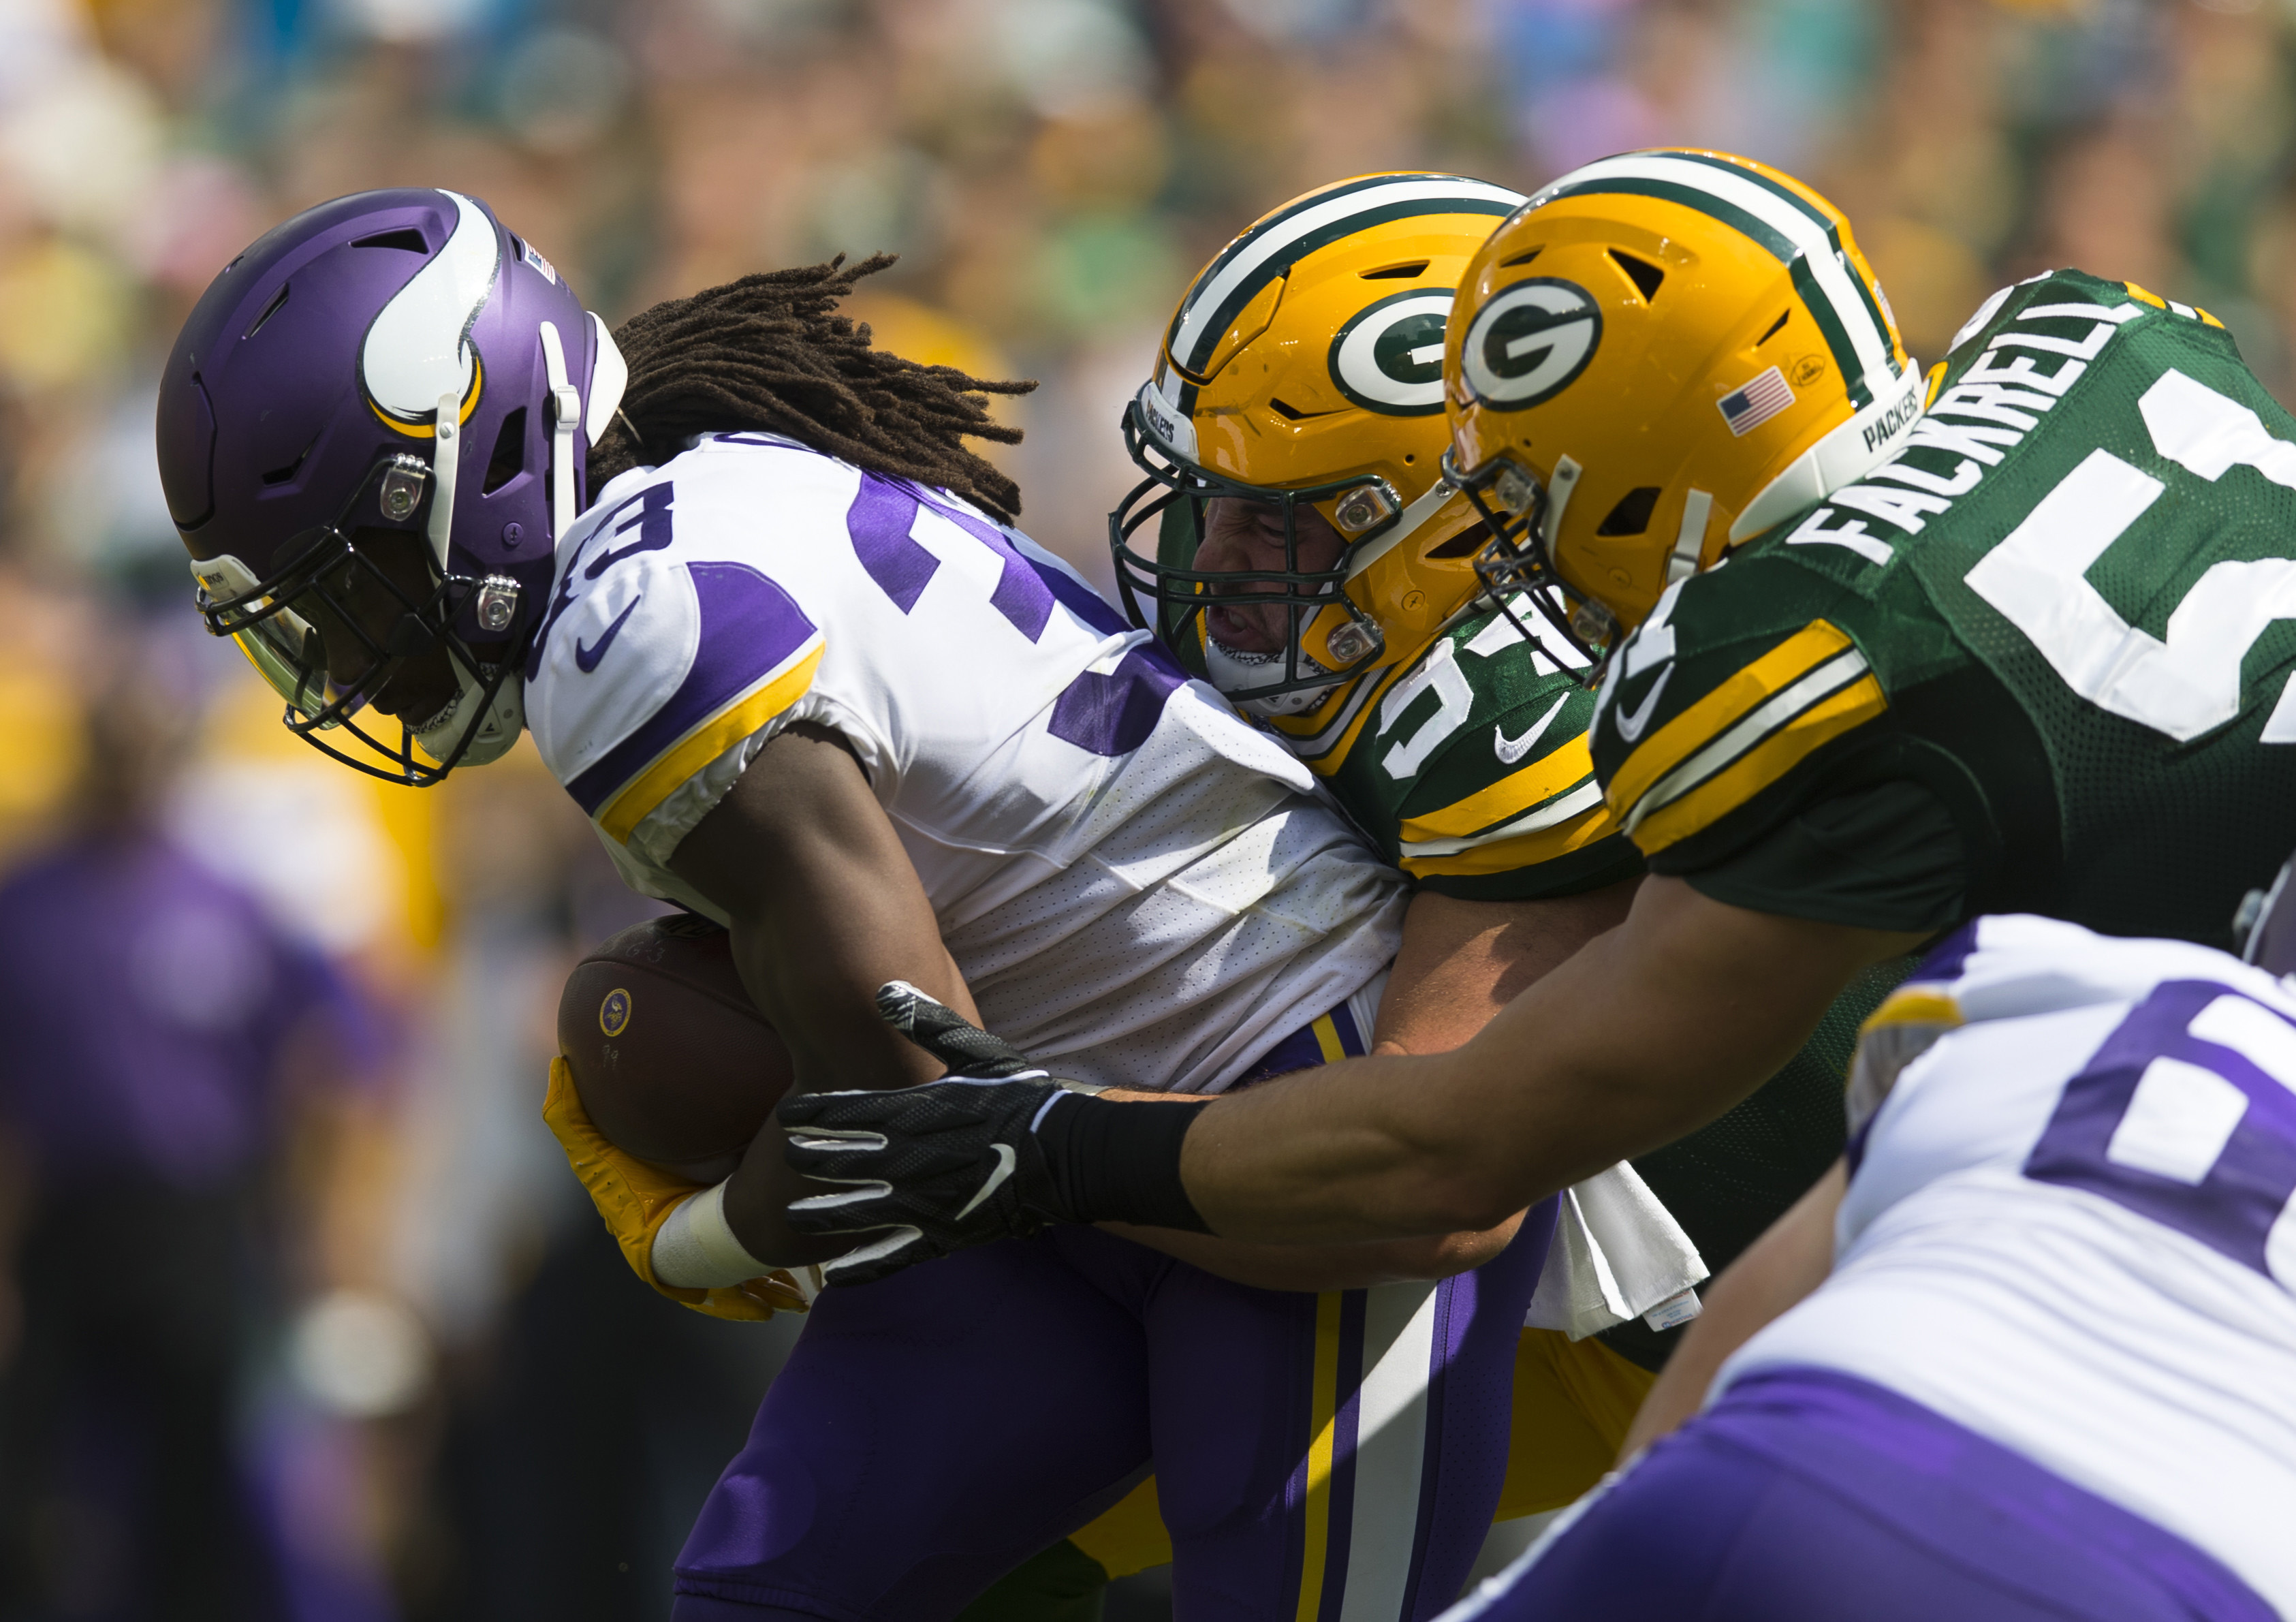 Packers Defense Eager to Prove They Can Contain Cook, Vikings Ground Game